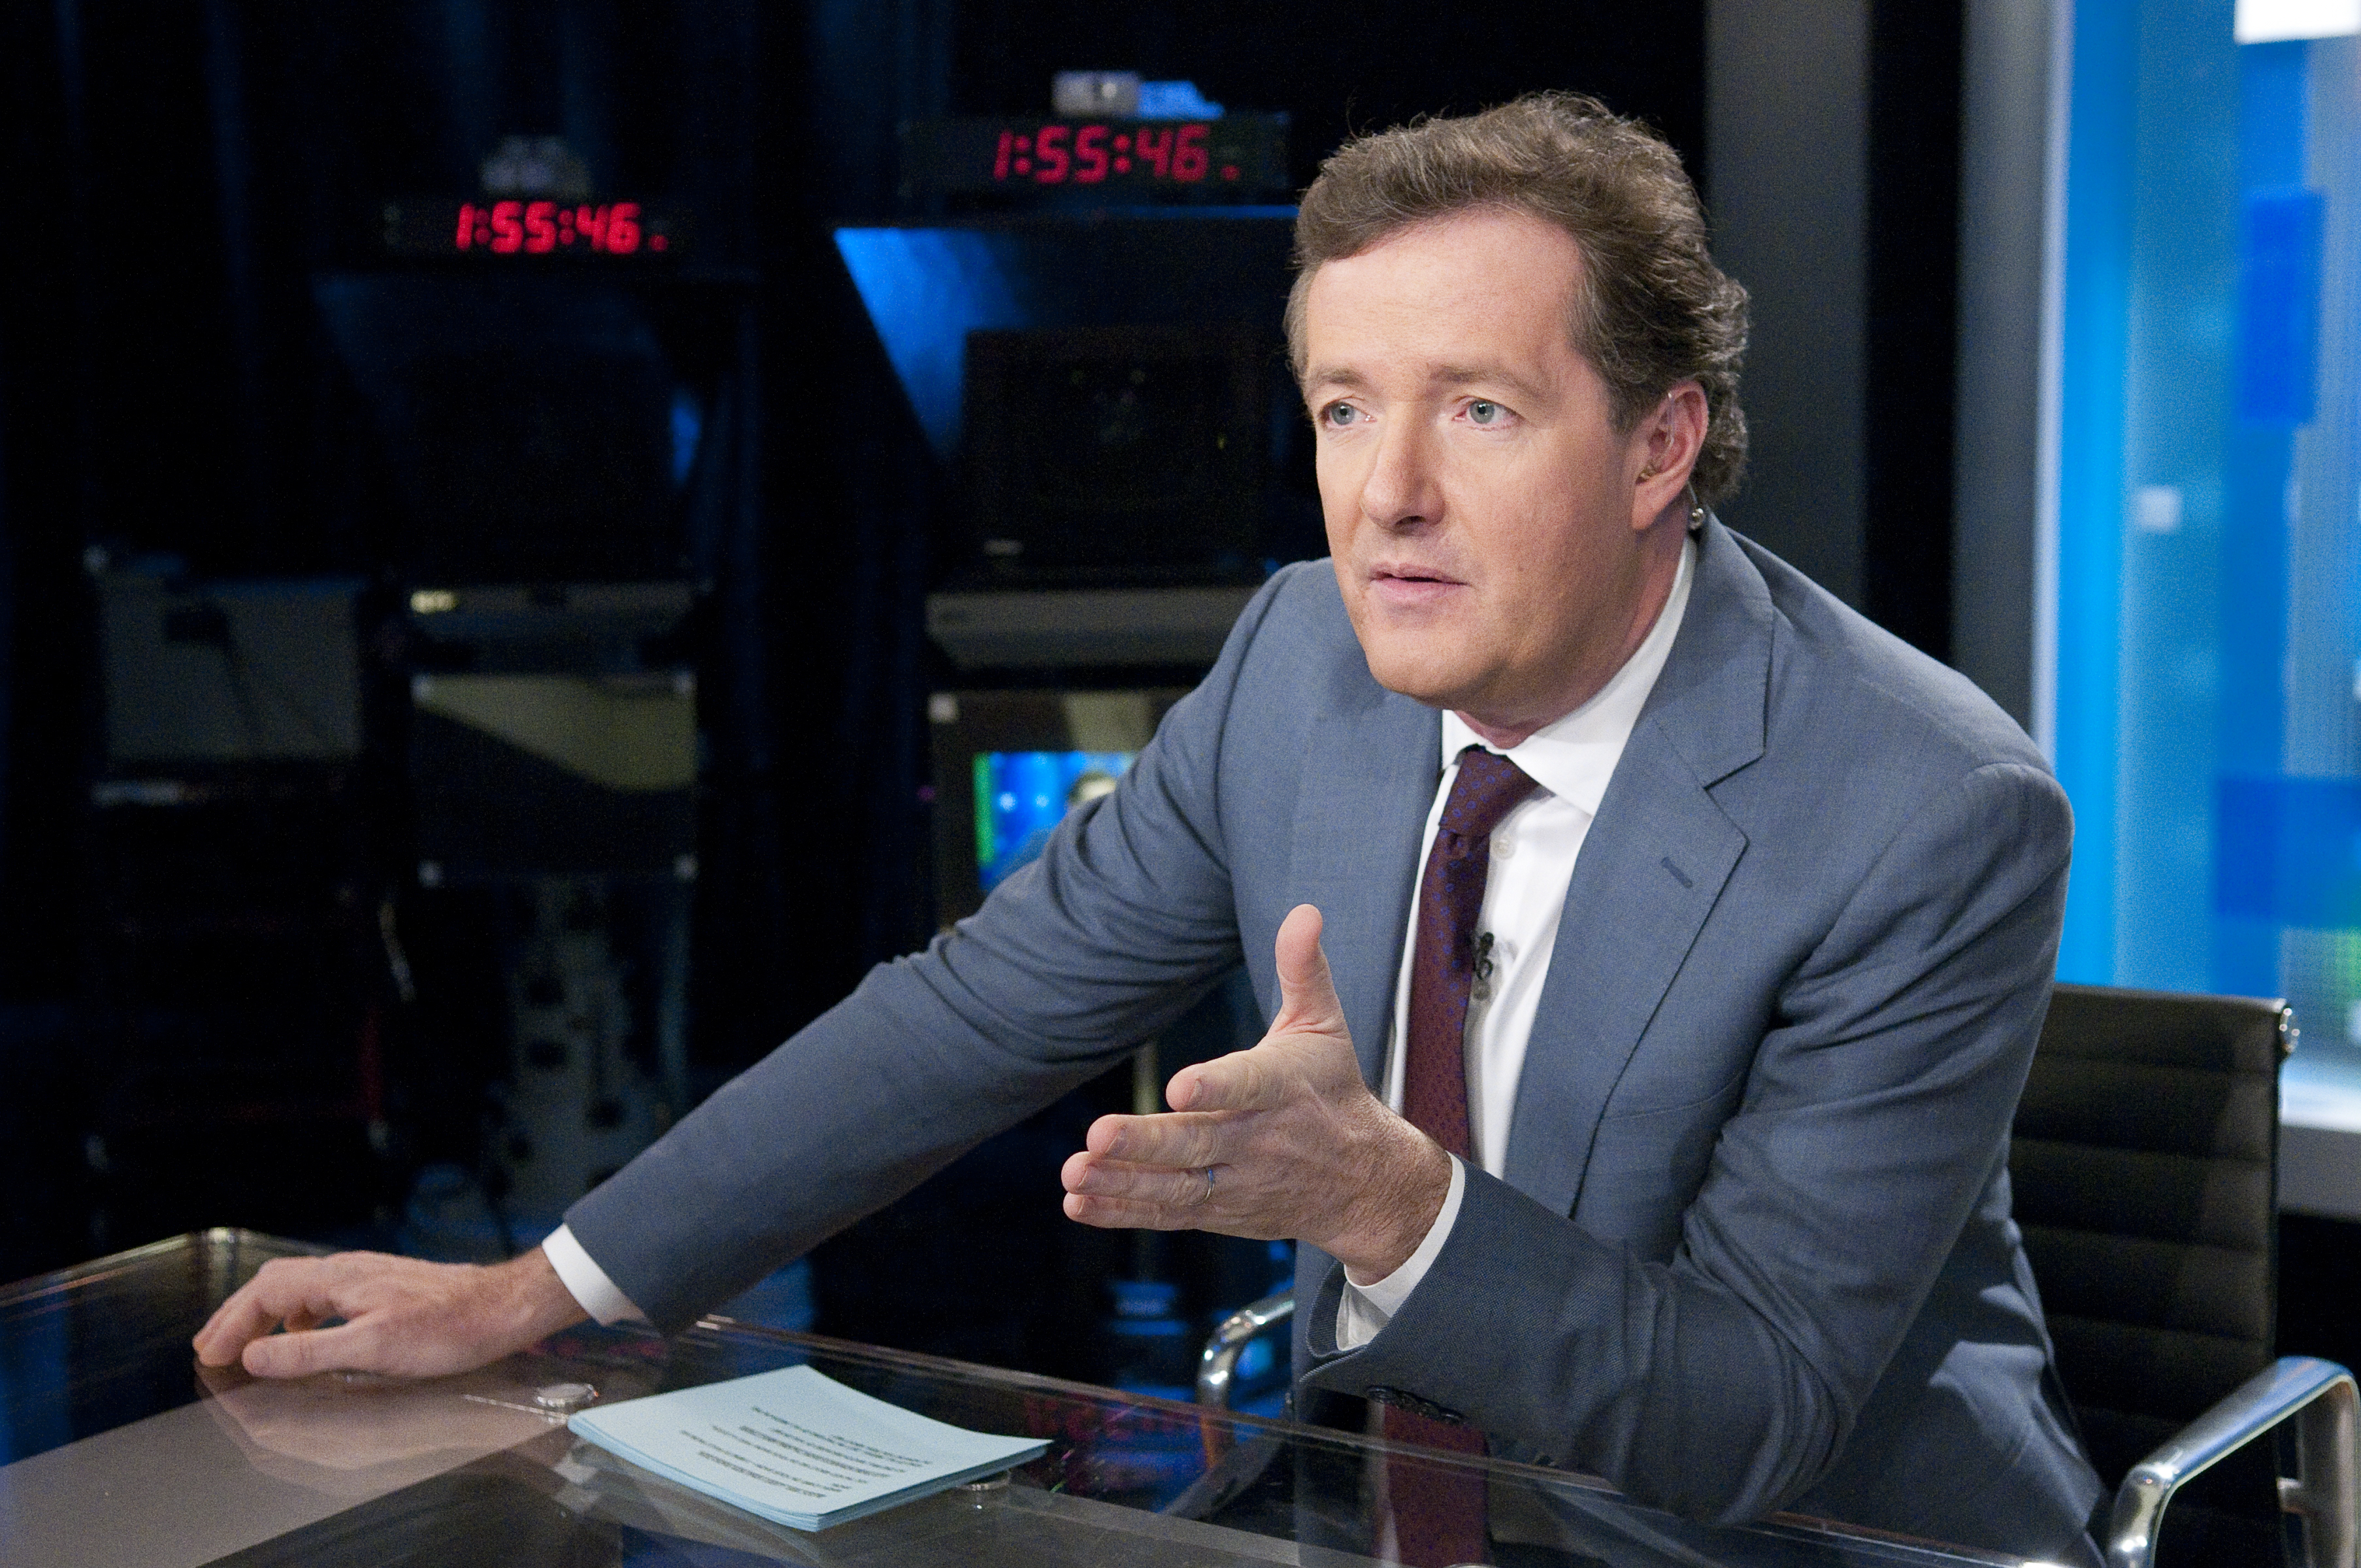 Piers Morgan reveals himself as a fashion trendsetter and budding film star